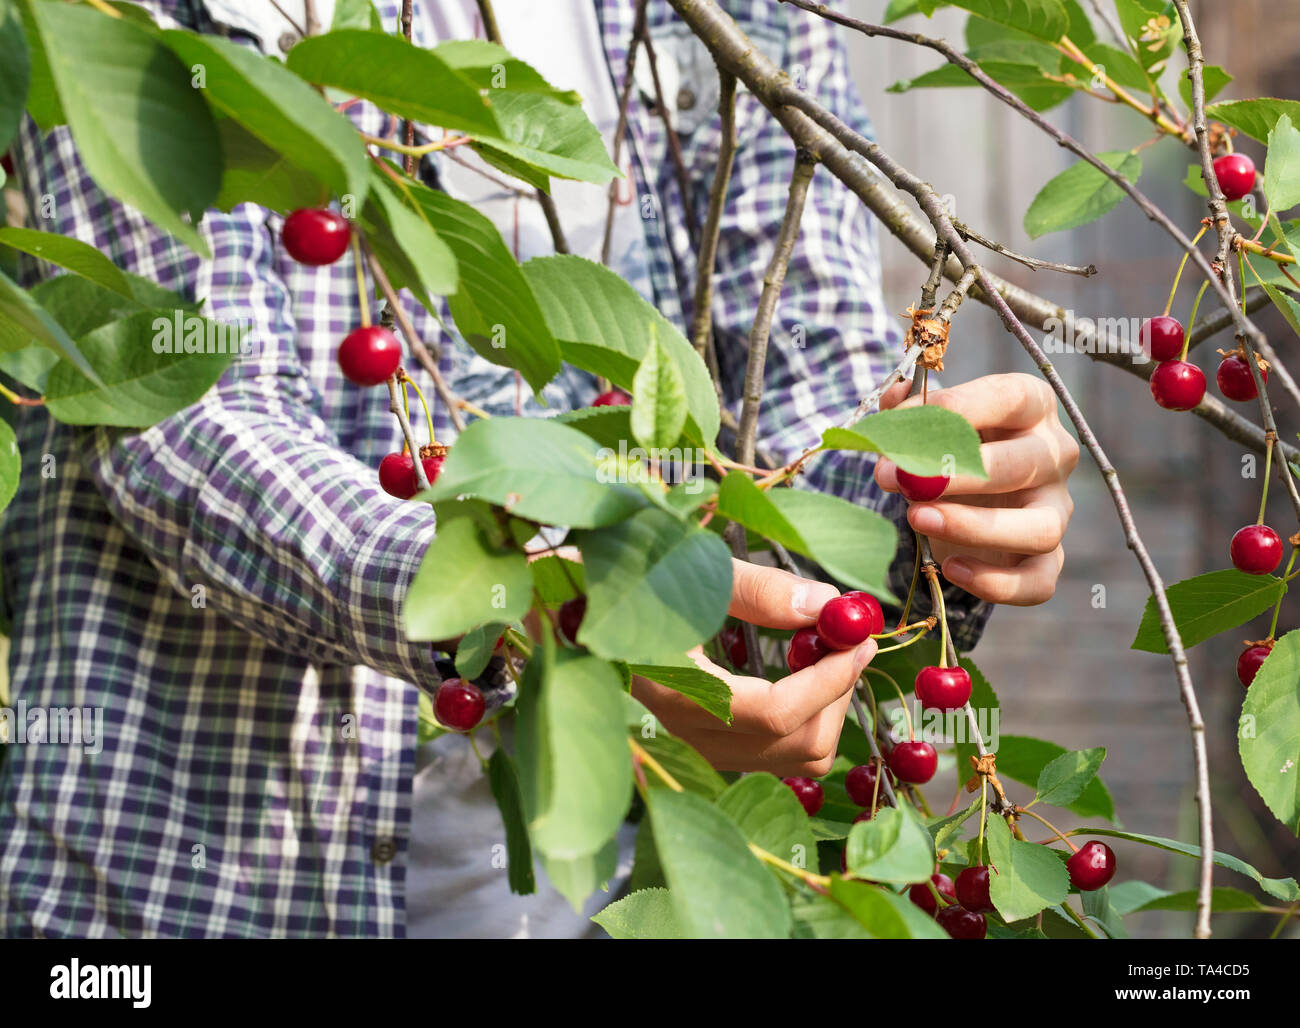 A young farmer is harvesting a harvest of red ripe cherries in the summer garden. Close-up view. - Stock Image